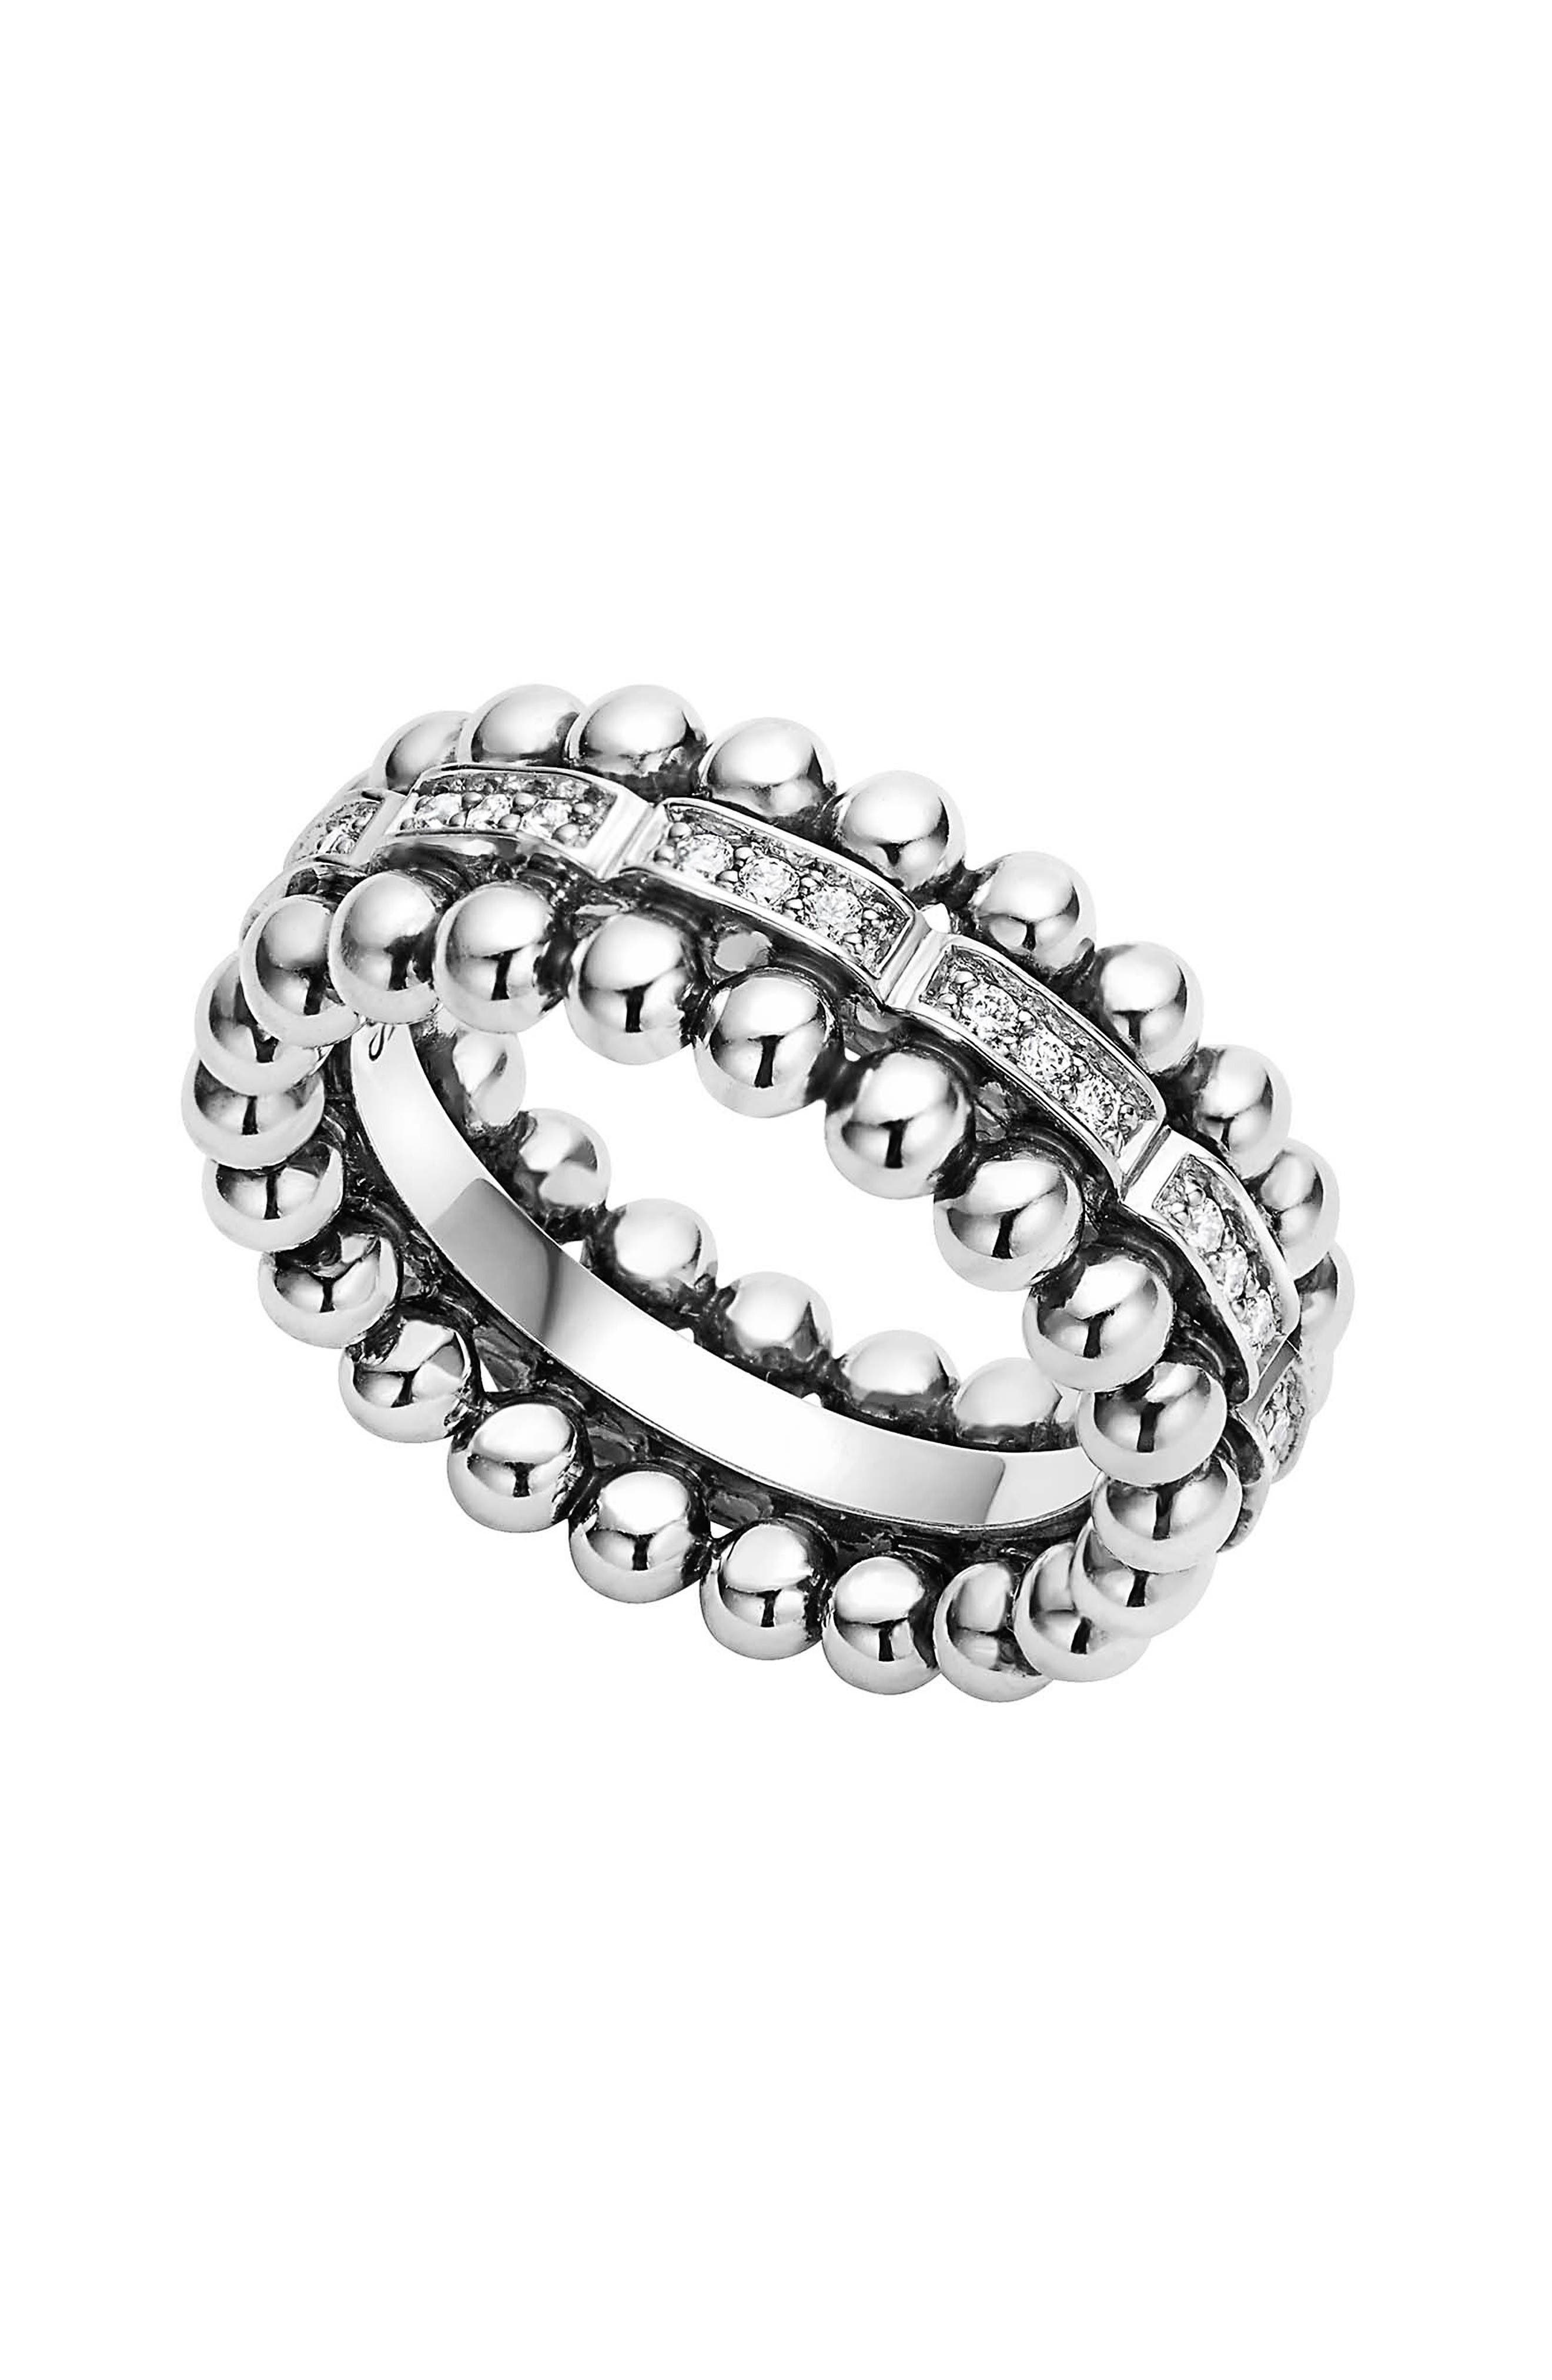 LAGOS Caviar Spark Diamond Band Ring